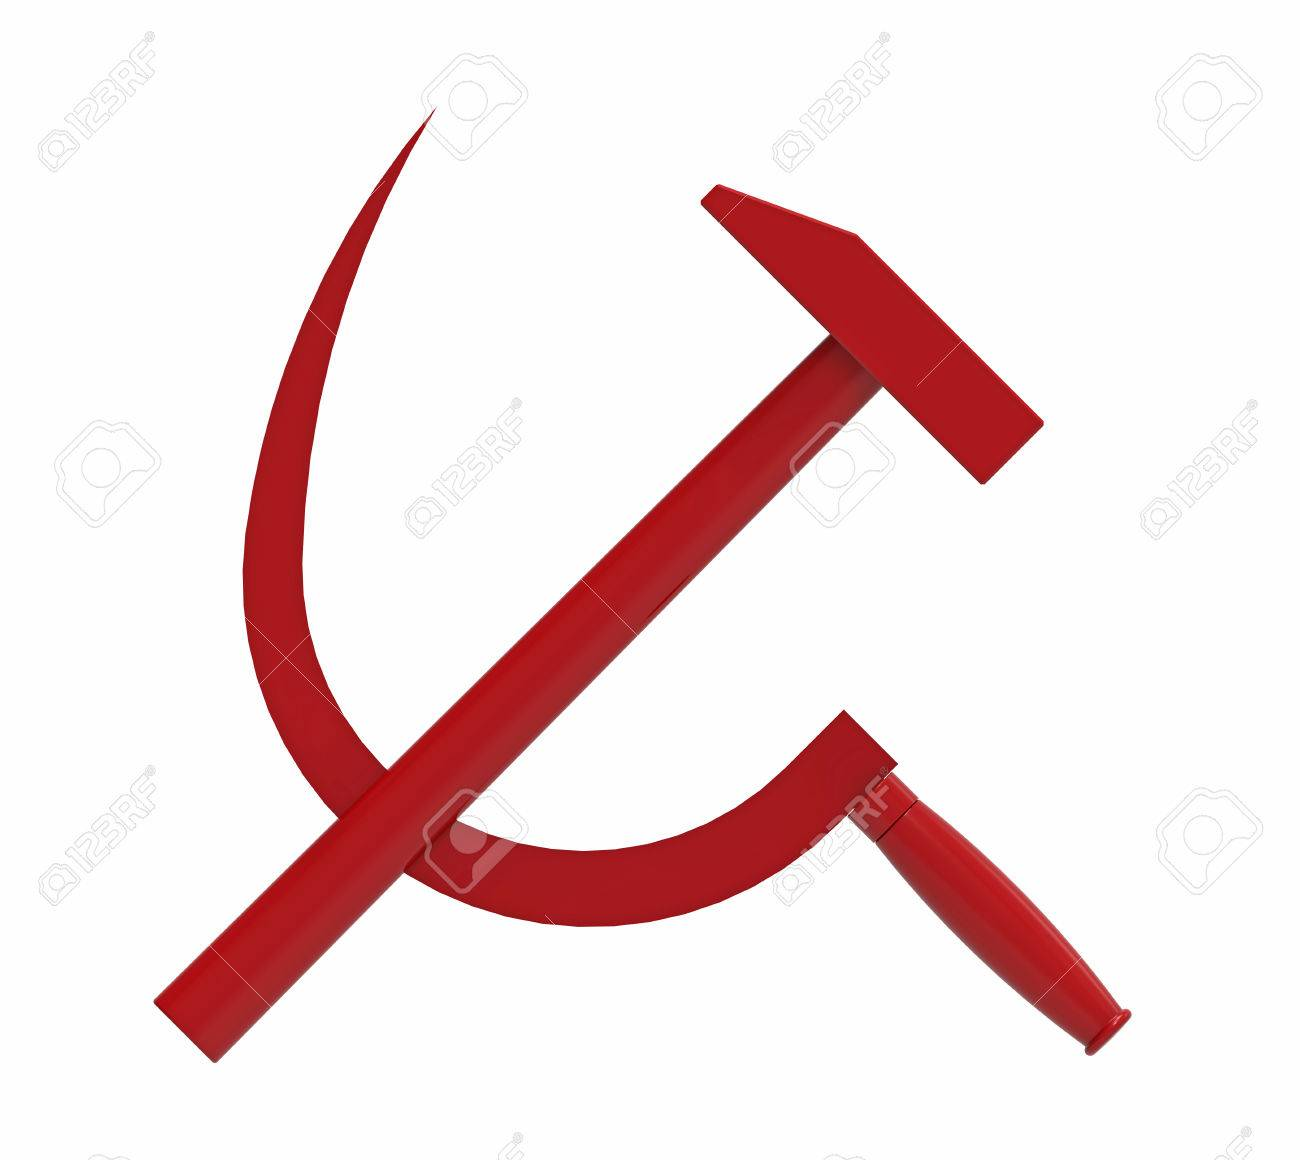 Hammer and sickle communist symbol 3d render stock photo hammer and sickle communist symbol 3d render stock photo 79969784 biocorpaavc Gallery